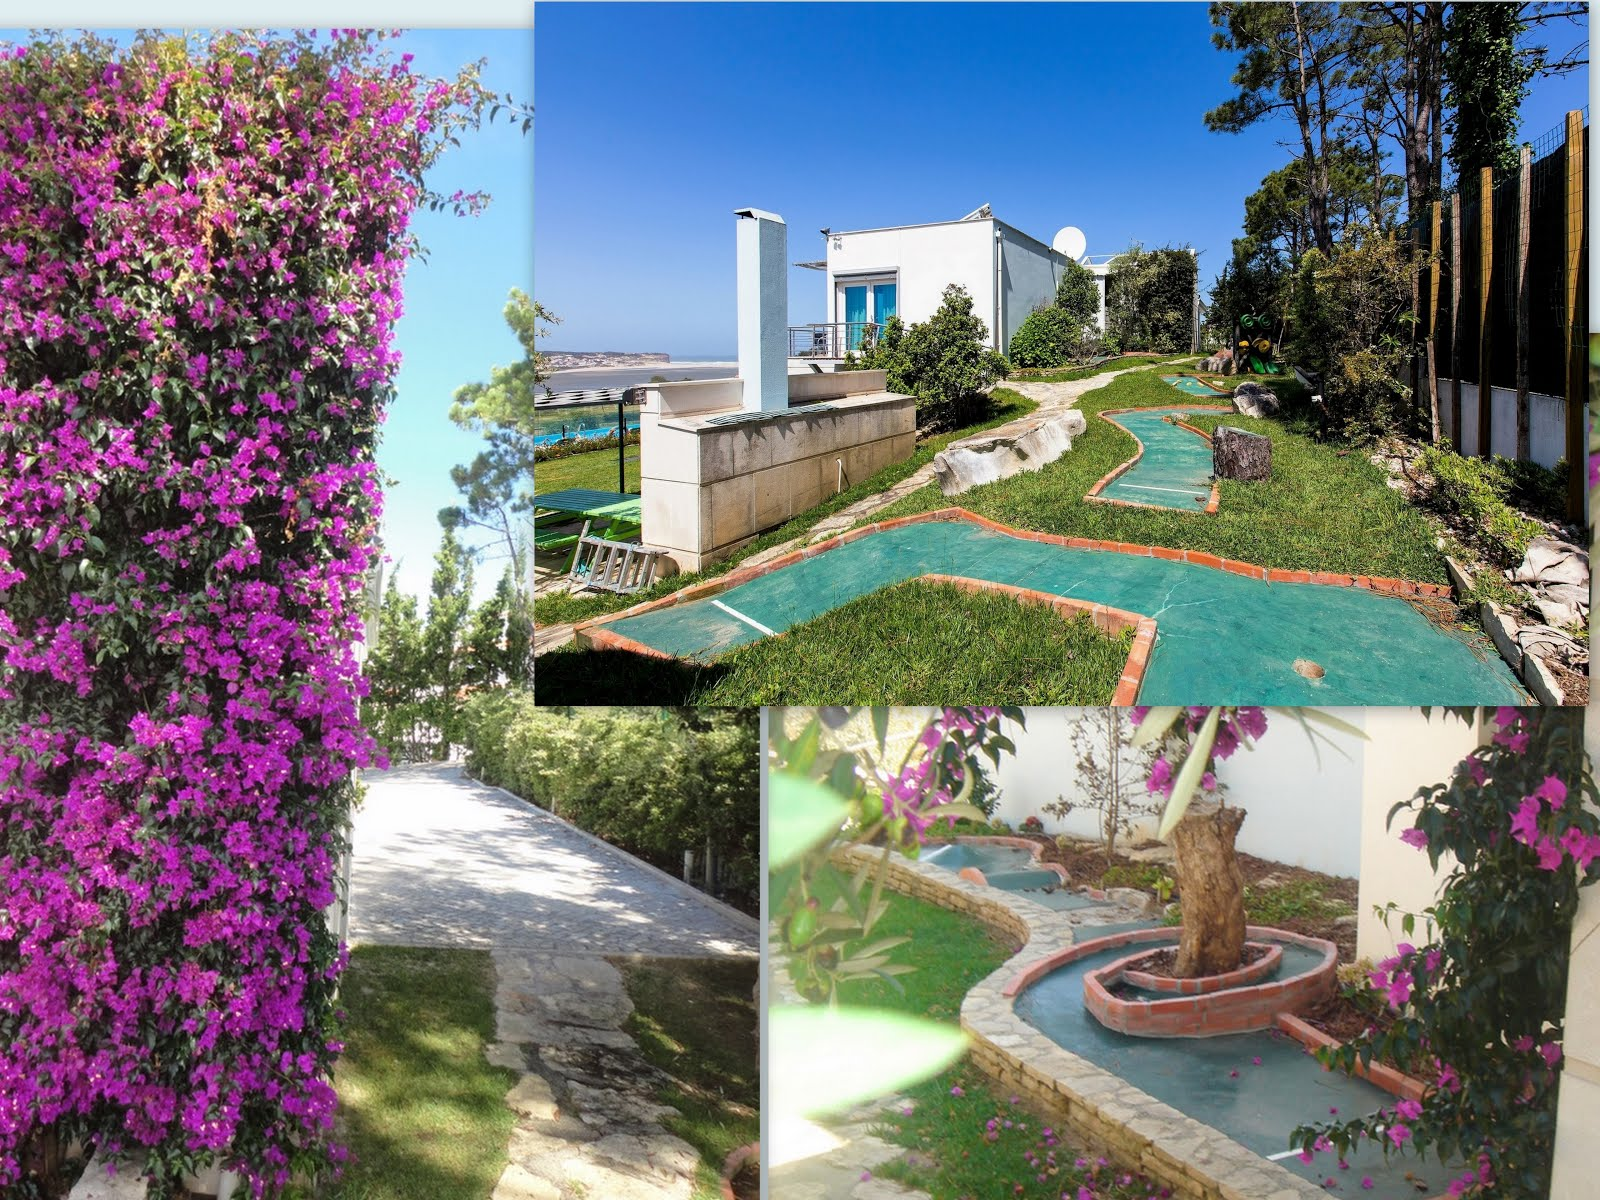 Casa Do Lago Luxury Vacation Property Children Pool Fence Air - Portugal map silver coast